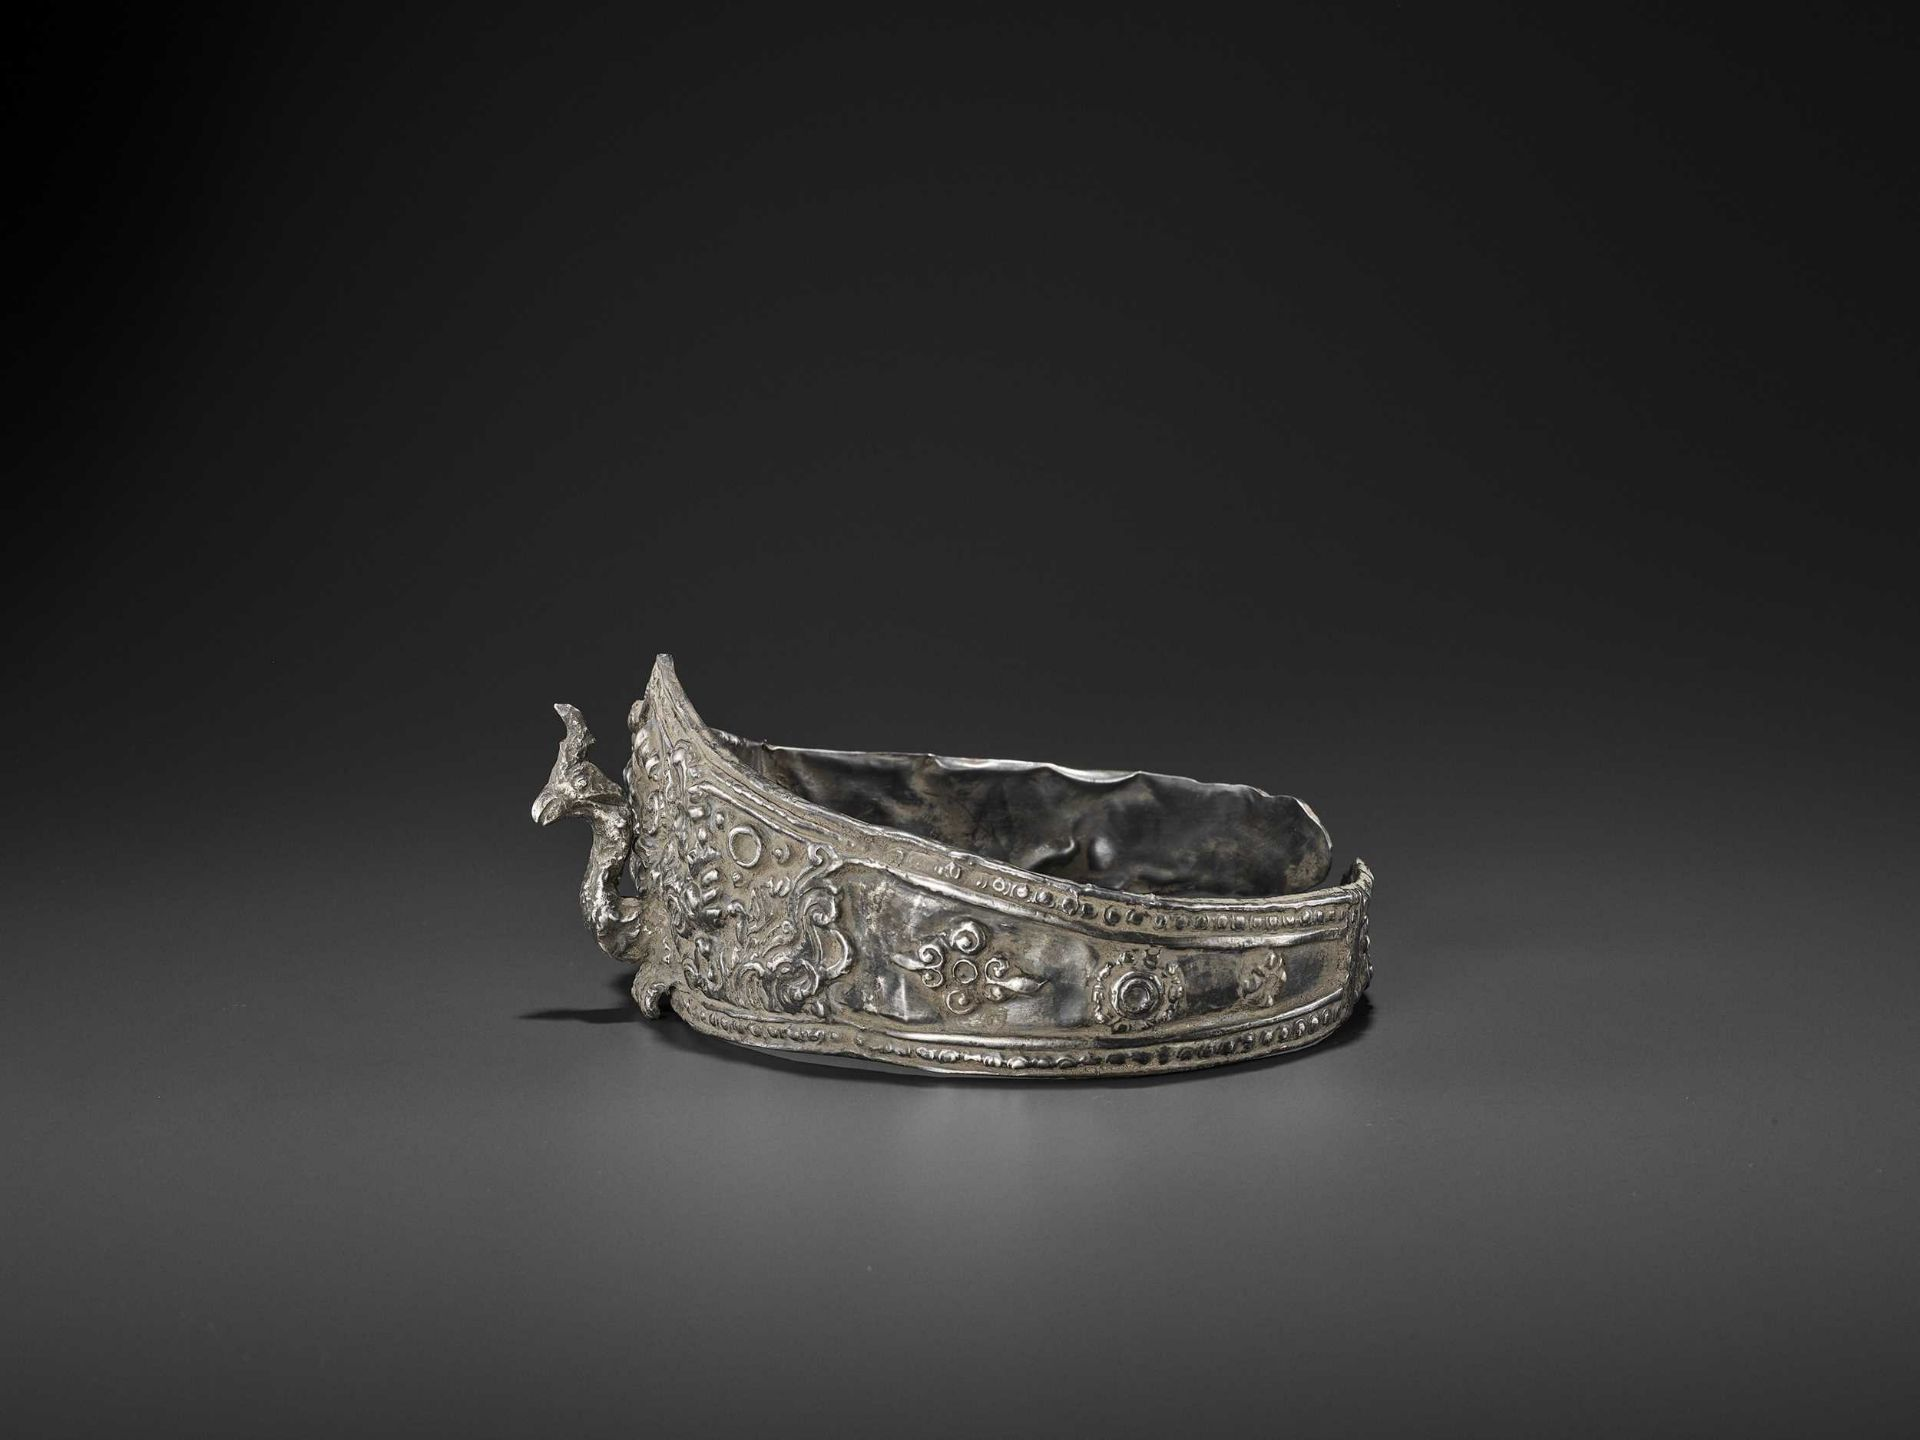 A LARGE ANDUNIQUE CHAM SILVERR EPOUSSÉ CROWN WITH A PHOENIX - Bild 5 aus 8